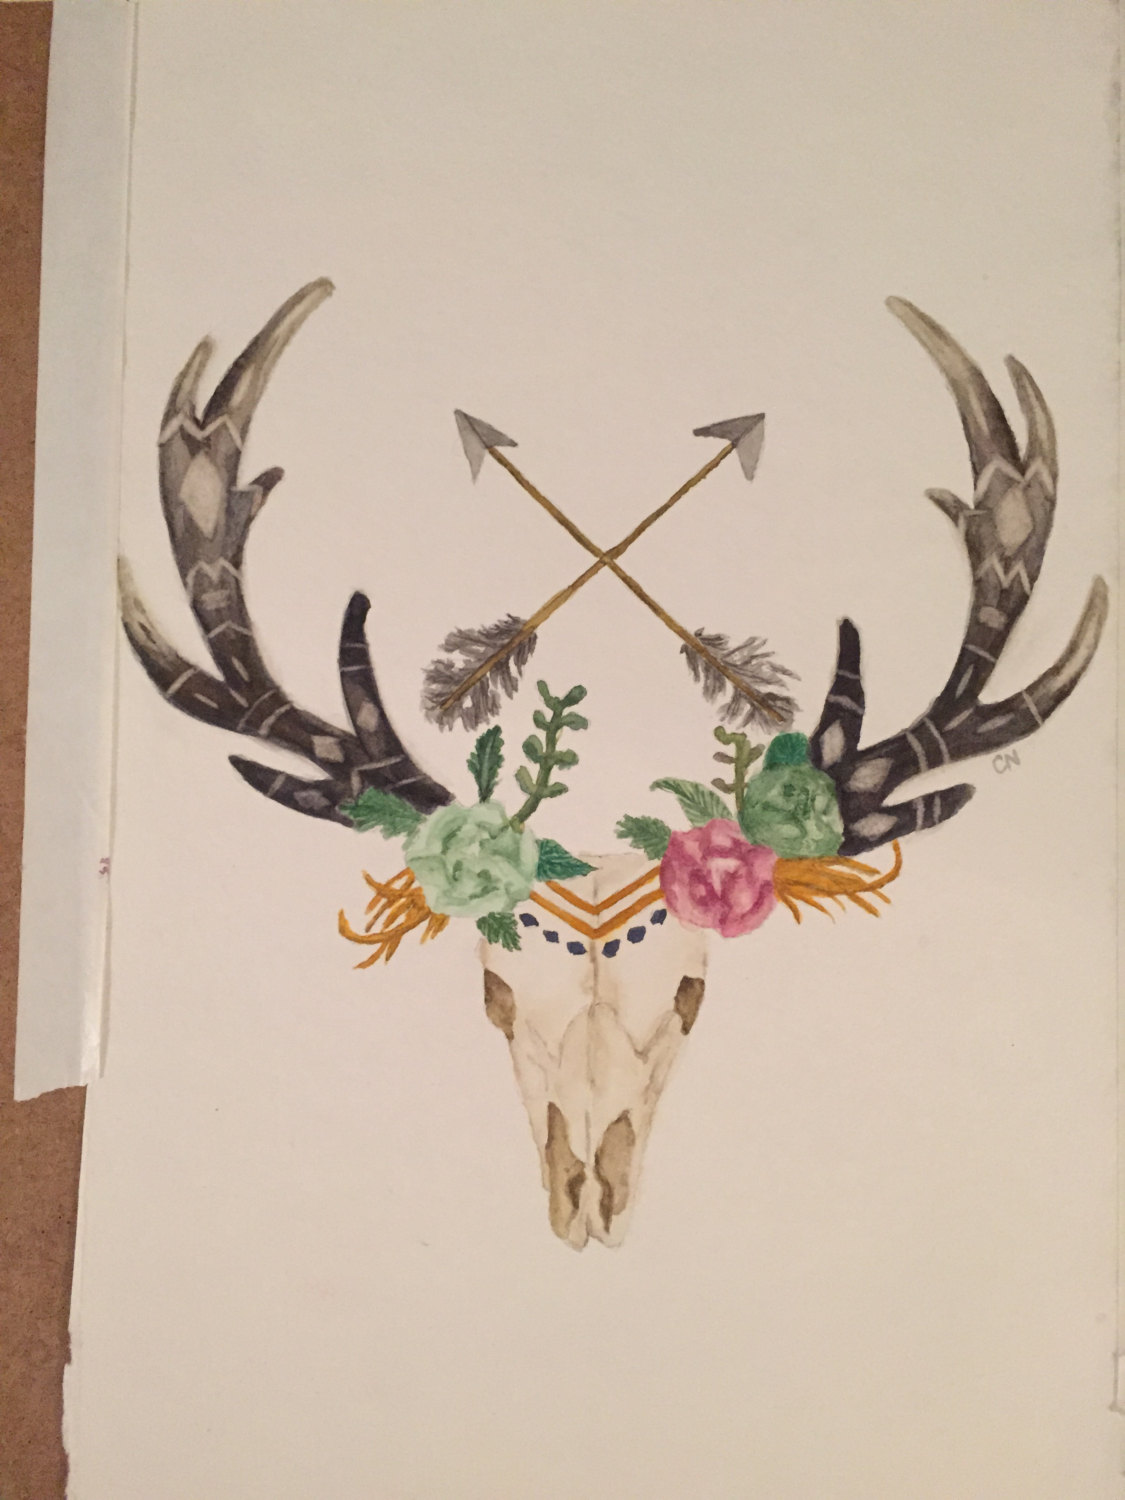 Deer Skull with Arrows and Flowers Watercolor, Deer, Skull, Arrows.